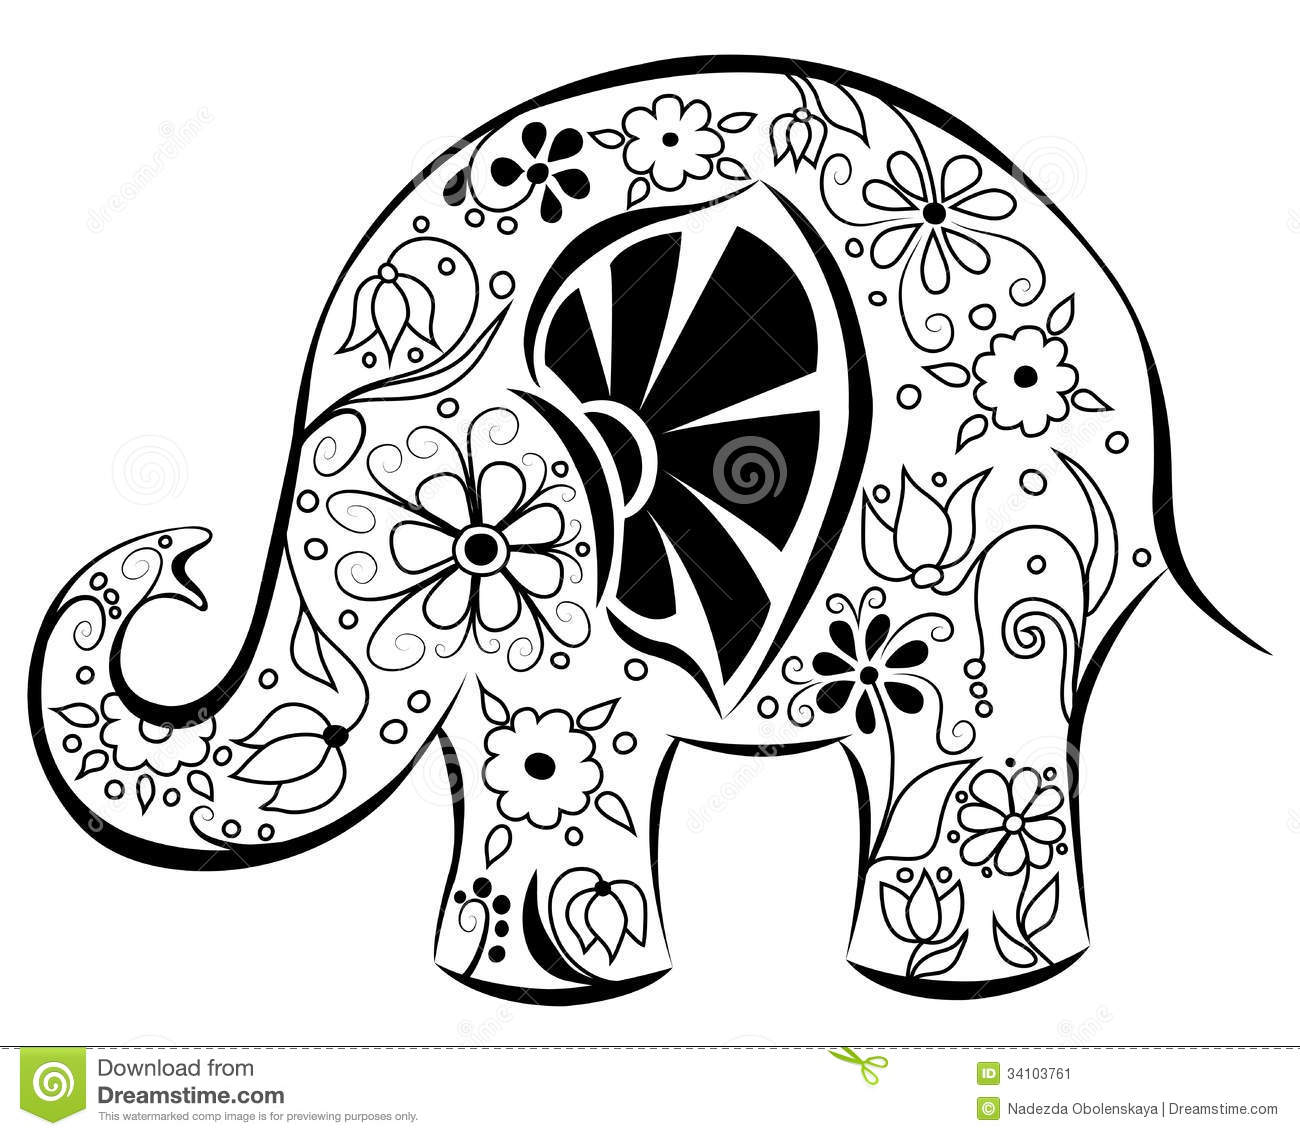 Silhouette Of An Elephant Painted By Flowers Black On White Cartoon Illustration